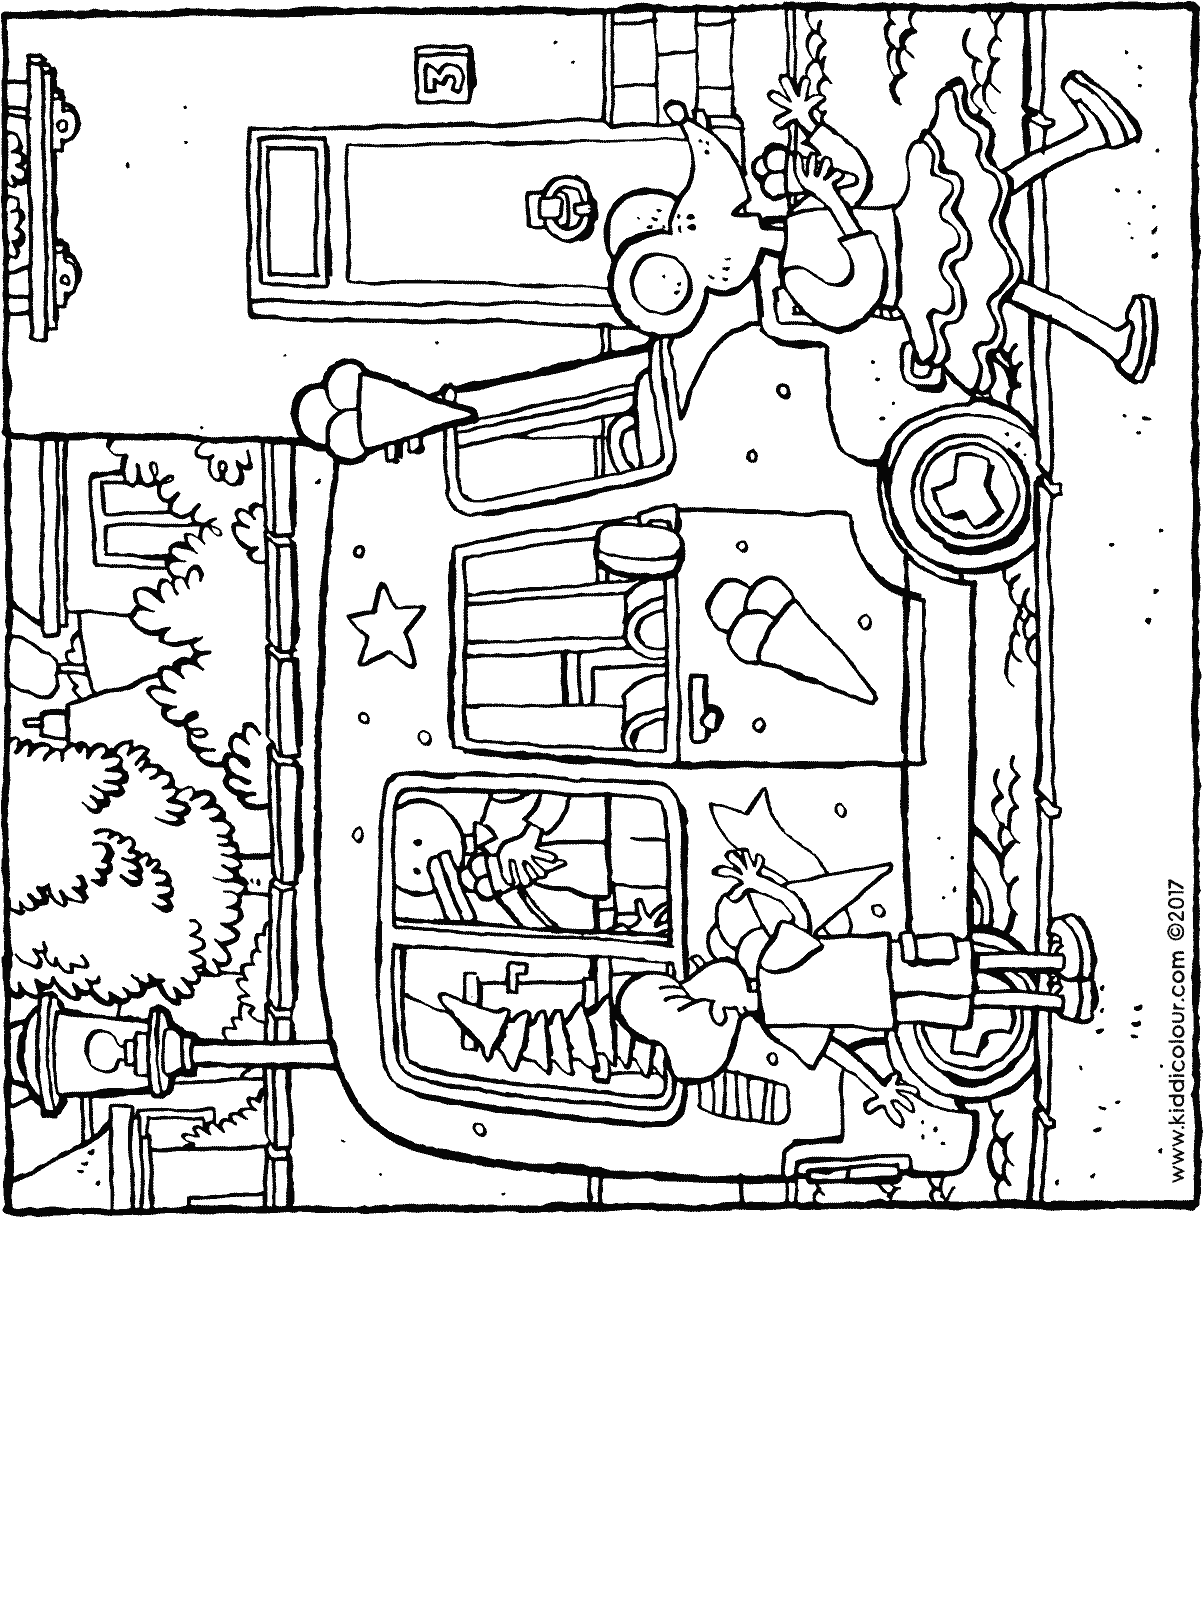 buying an ice-cream colouring page drawing picture 01H